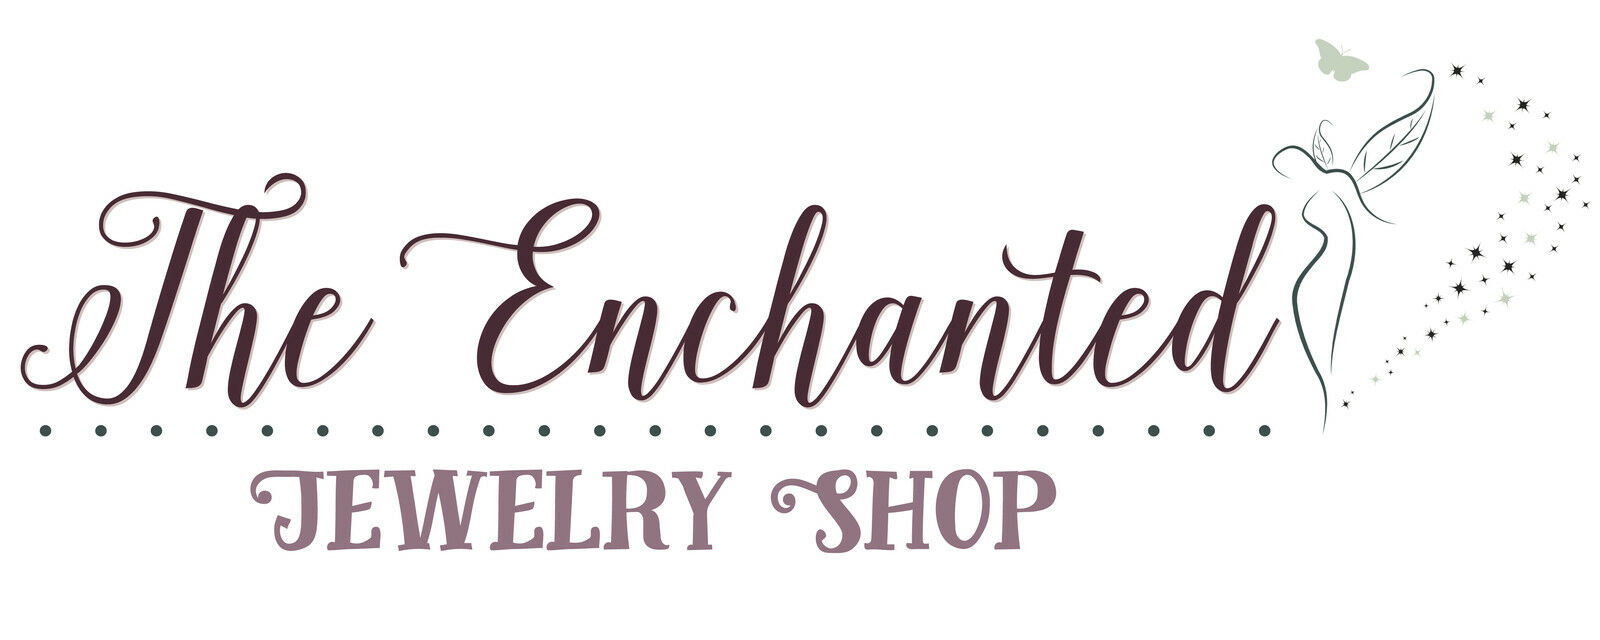 The Enchanted Jewelry Shop